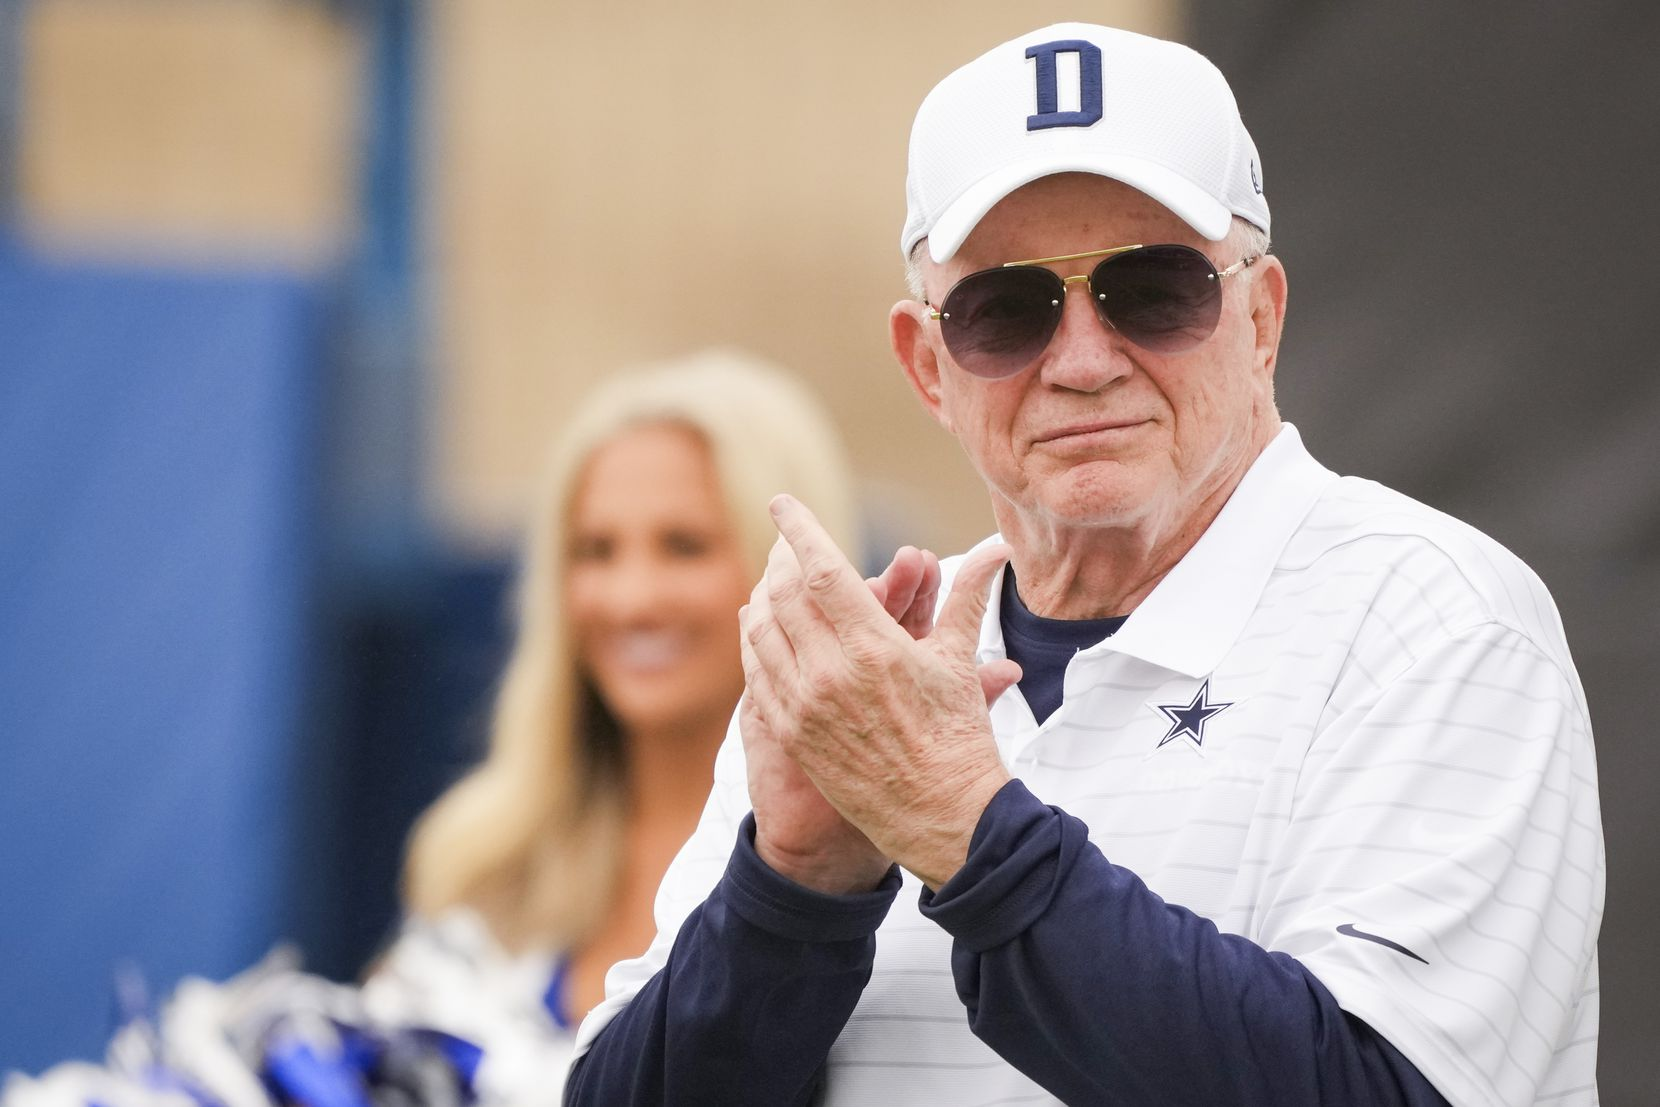 Owner and general manager Jerry Jones applauds a performance by the Dallas Cowboys cheerleaders during opening ceremonies before a practice at training camp on Saturday, July 24, 2021, in Oxnard, Calif. (Smiley N. Pool/The Dallas Morning News)